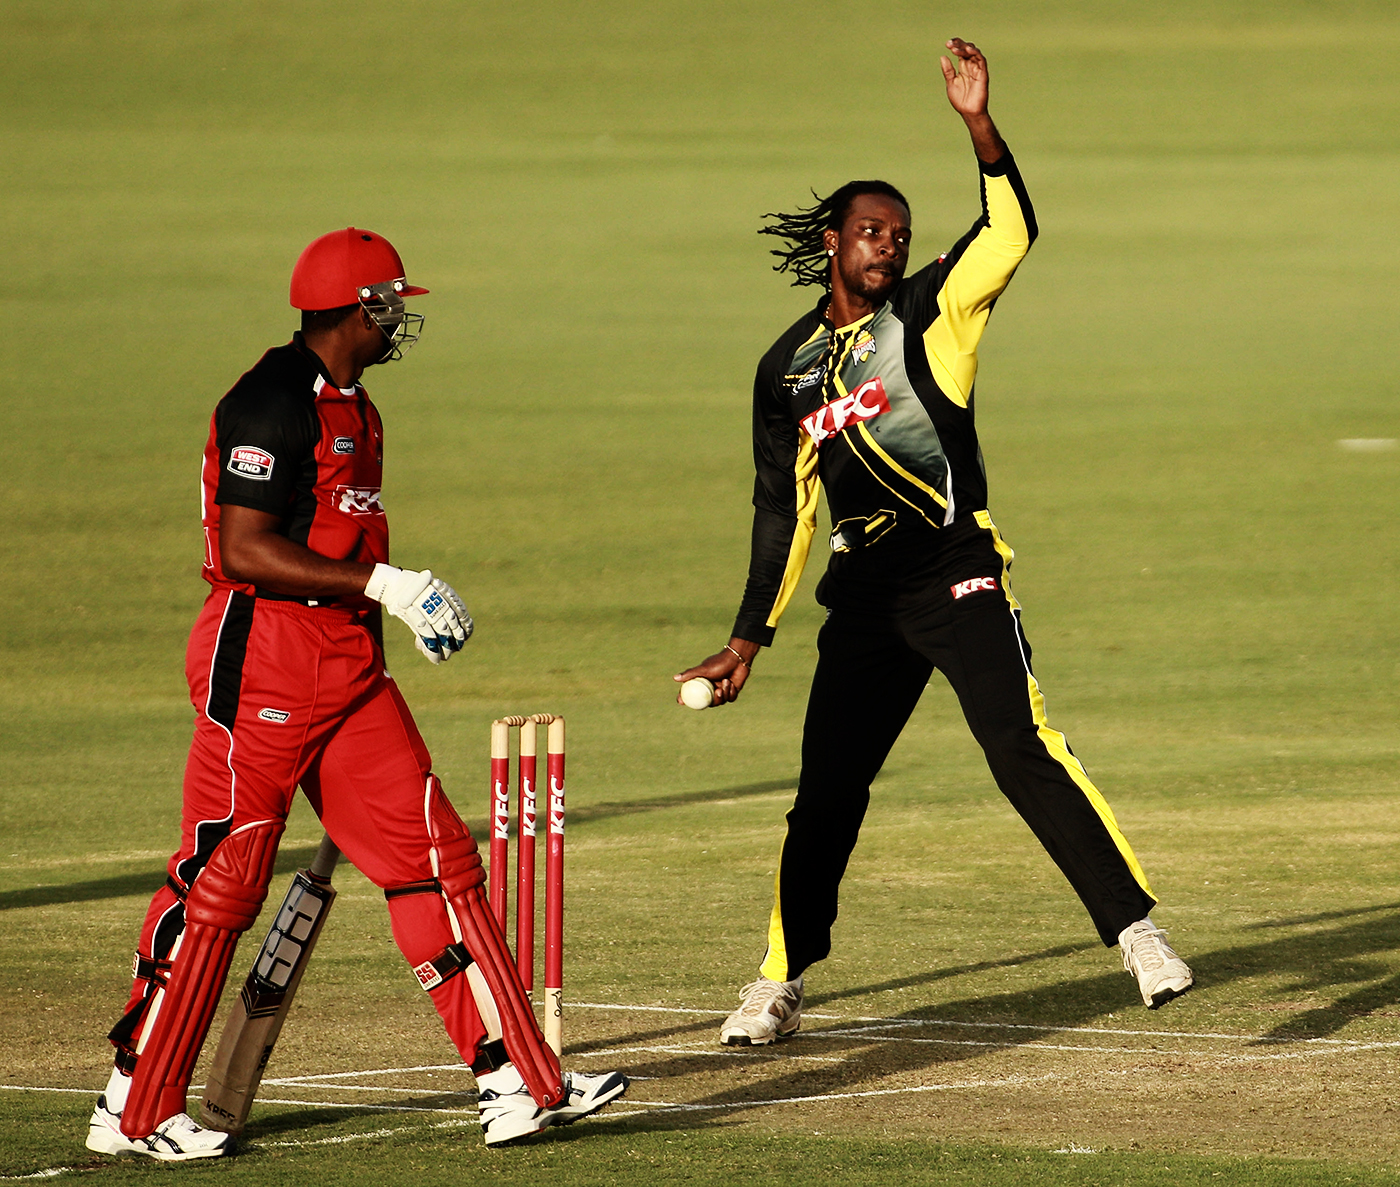 The vast T20 experience that players like Kieron Pollard (left) and Chris Gayle bring to the West Indies side from their time in leagues across the world is unmatched in any other national team